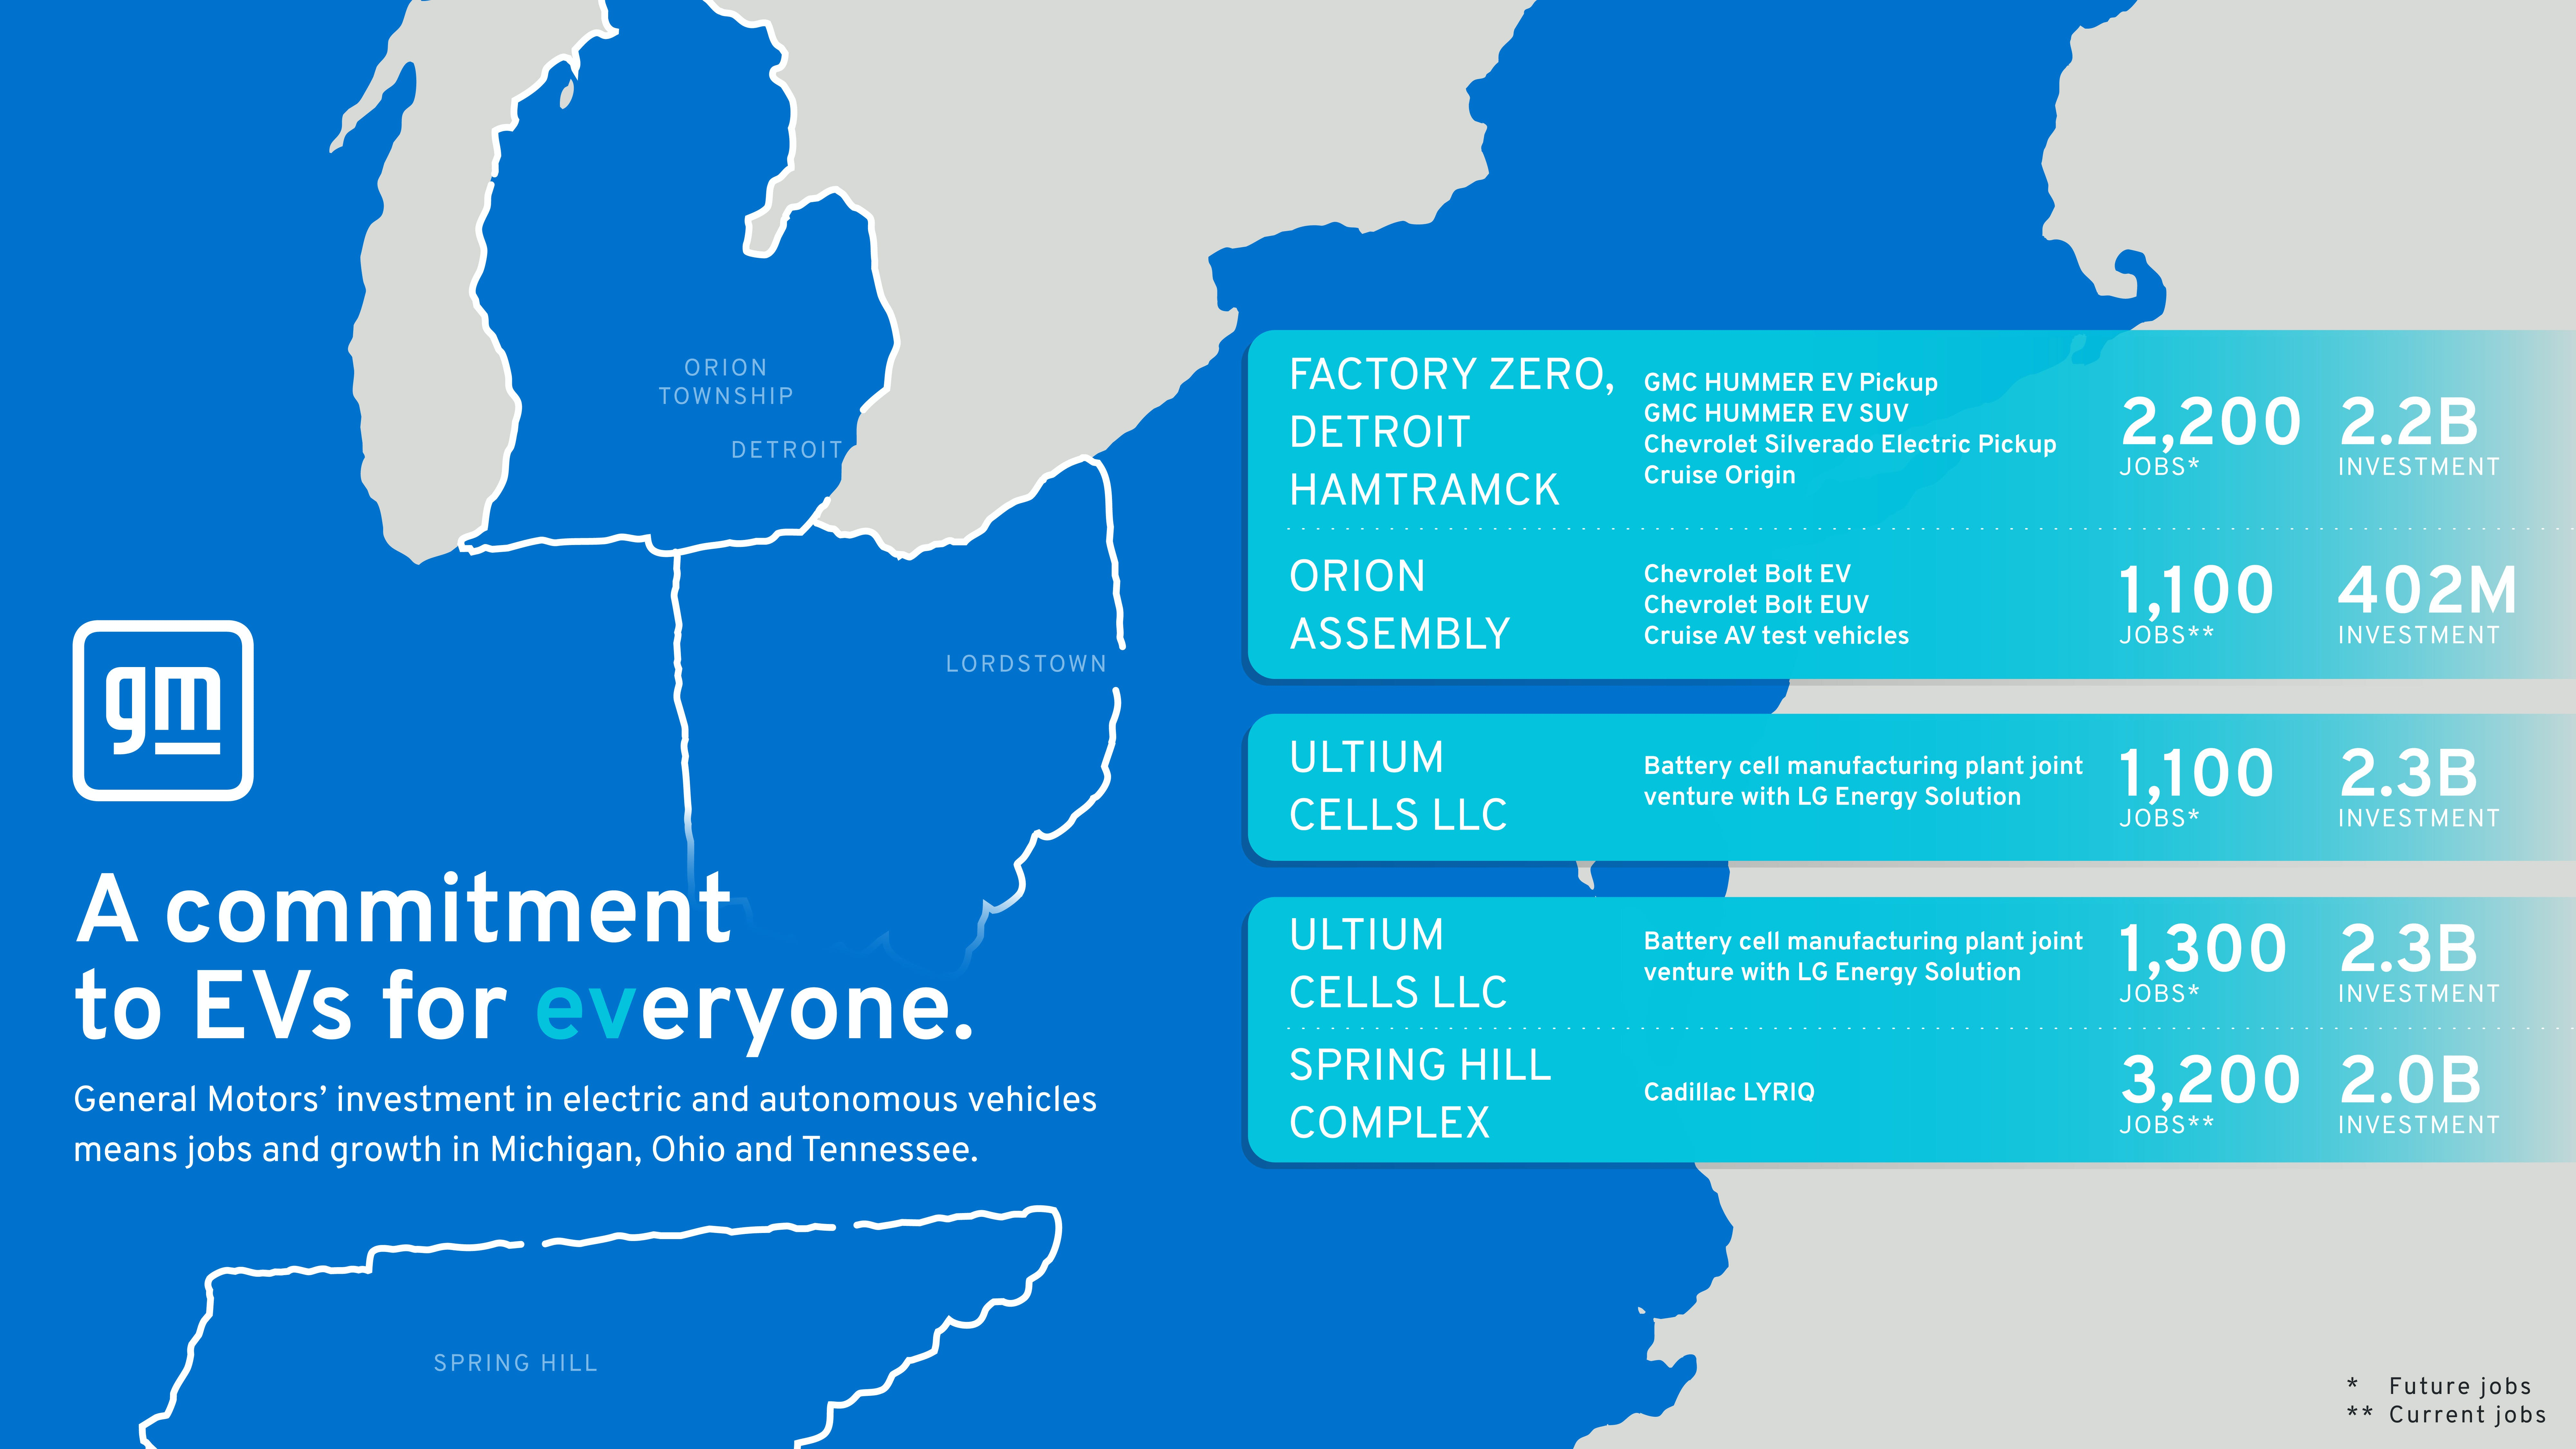 GM's investment map